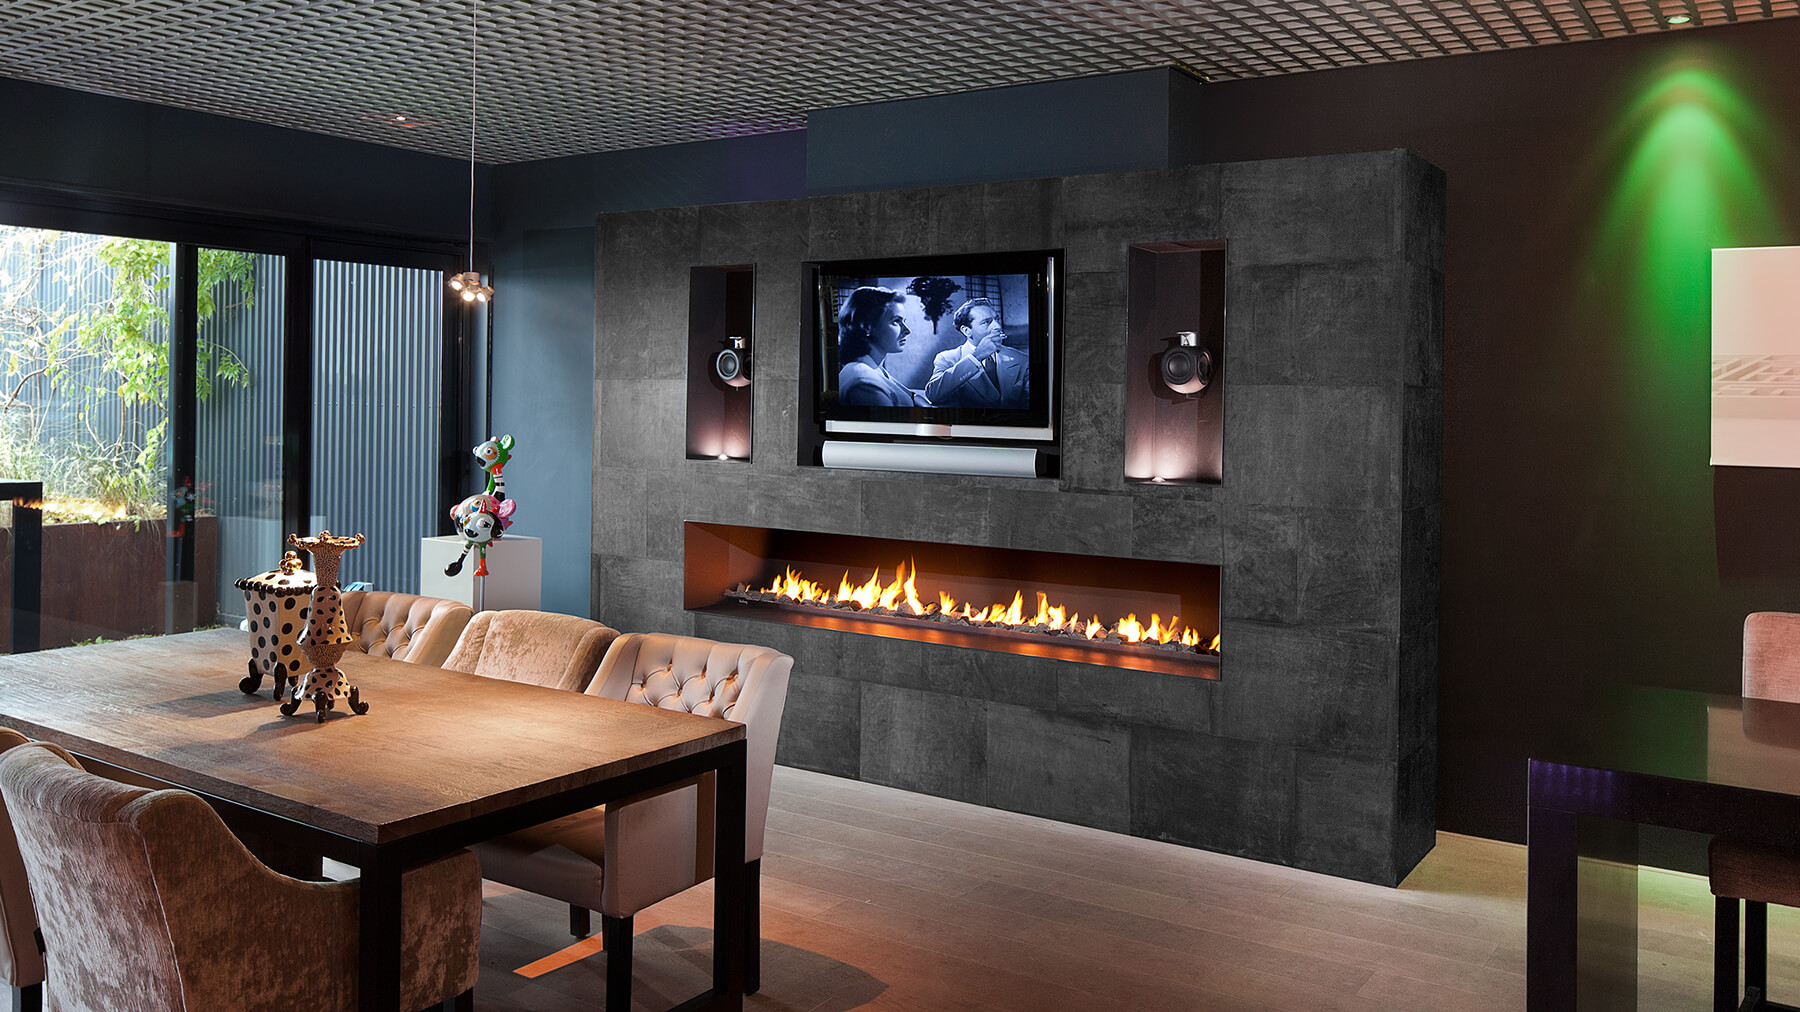 Custommade Fireplace As Home Centrepiece